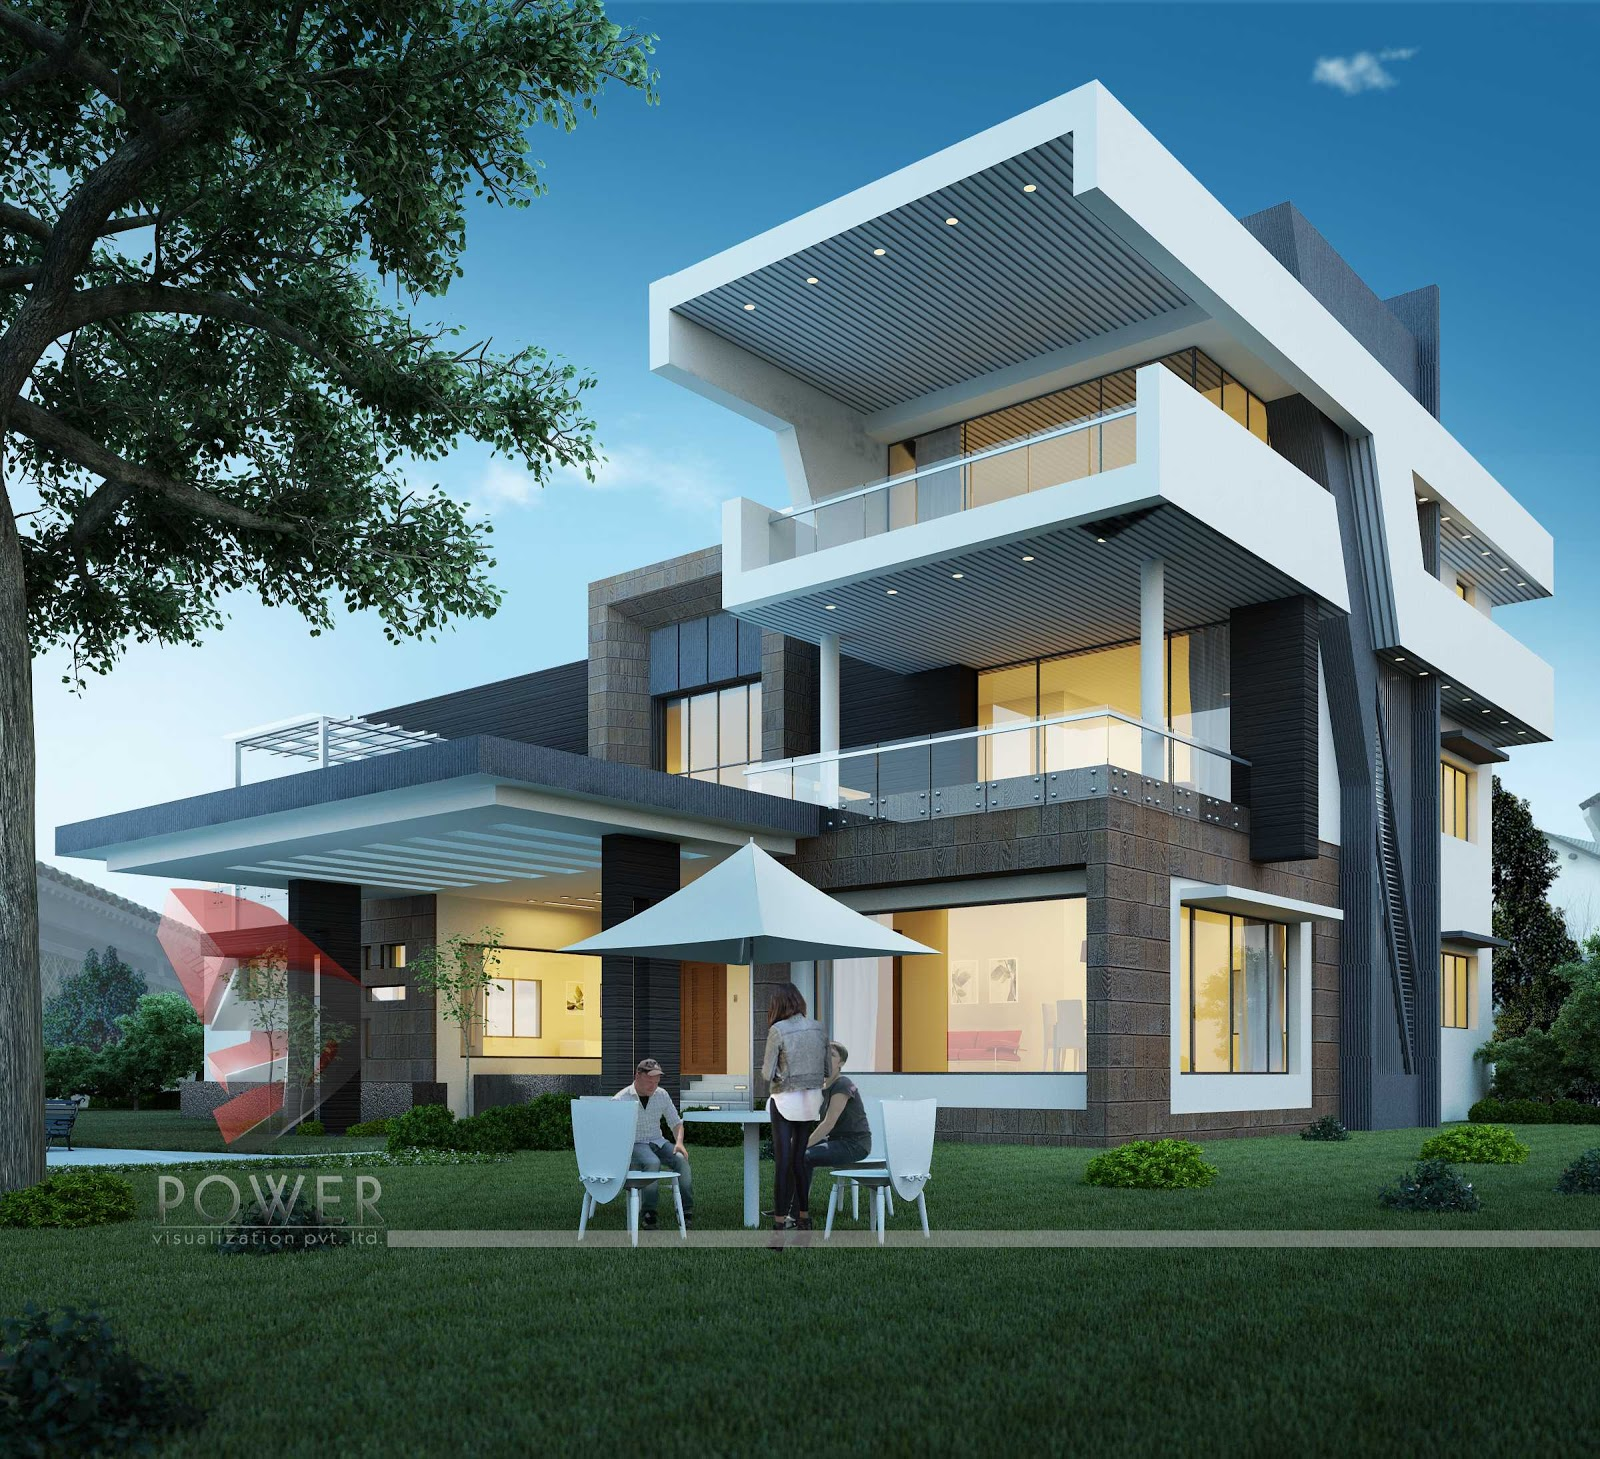 Ultra modern home designs home designs october 2012 for Modern house models pictures